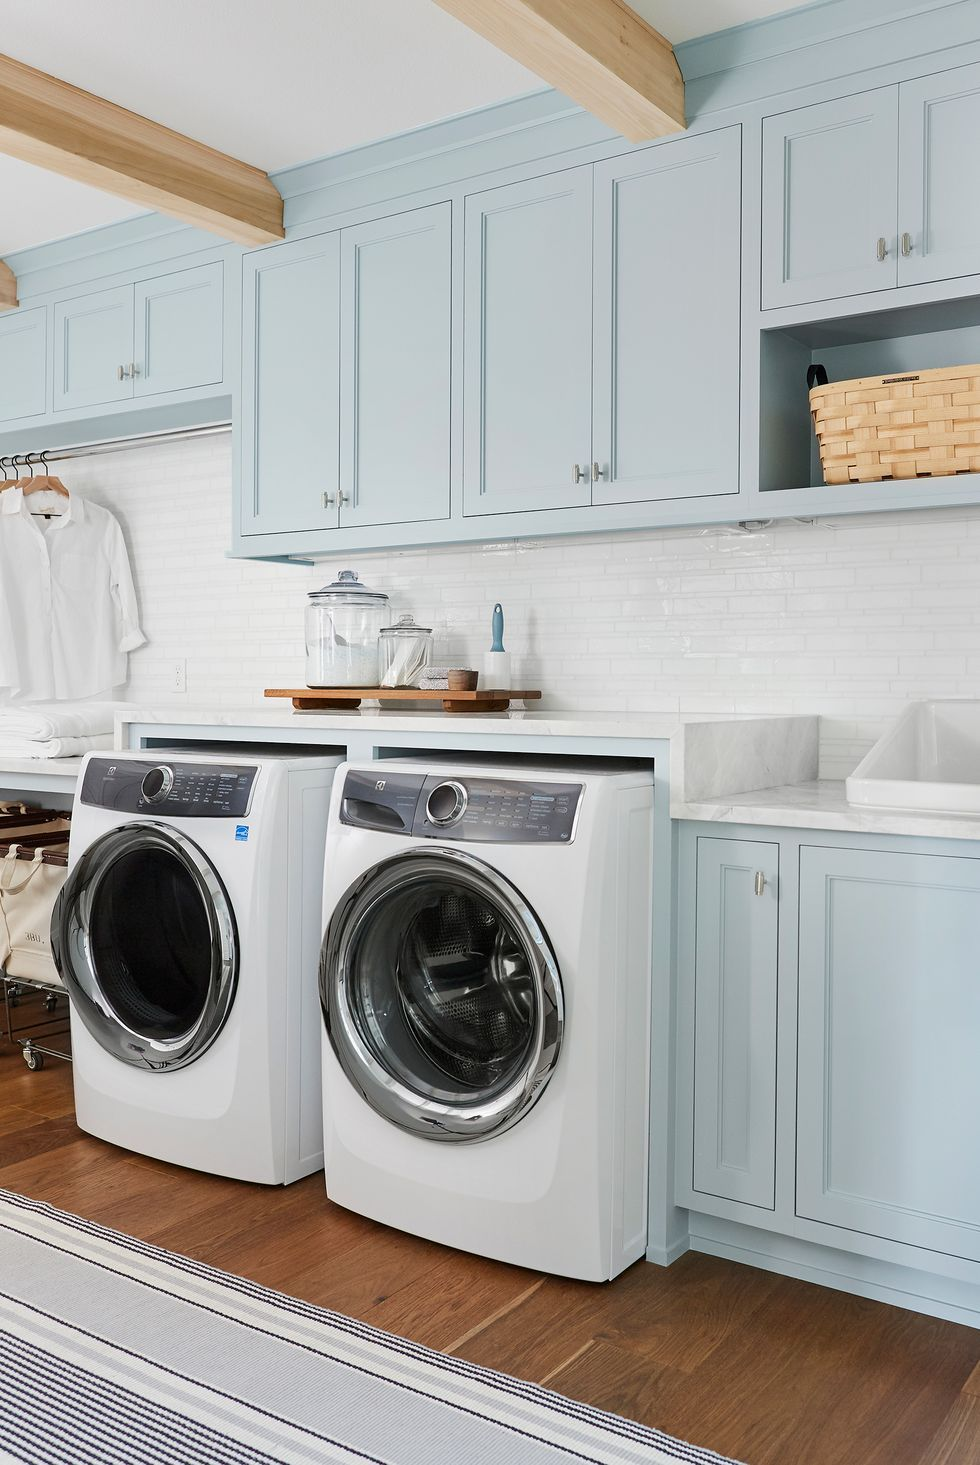 17 Small Laundry Room Ideas - Small Laundry Room Storage Tips